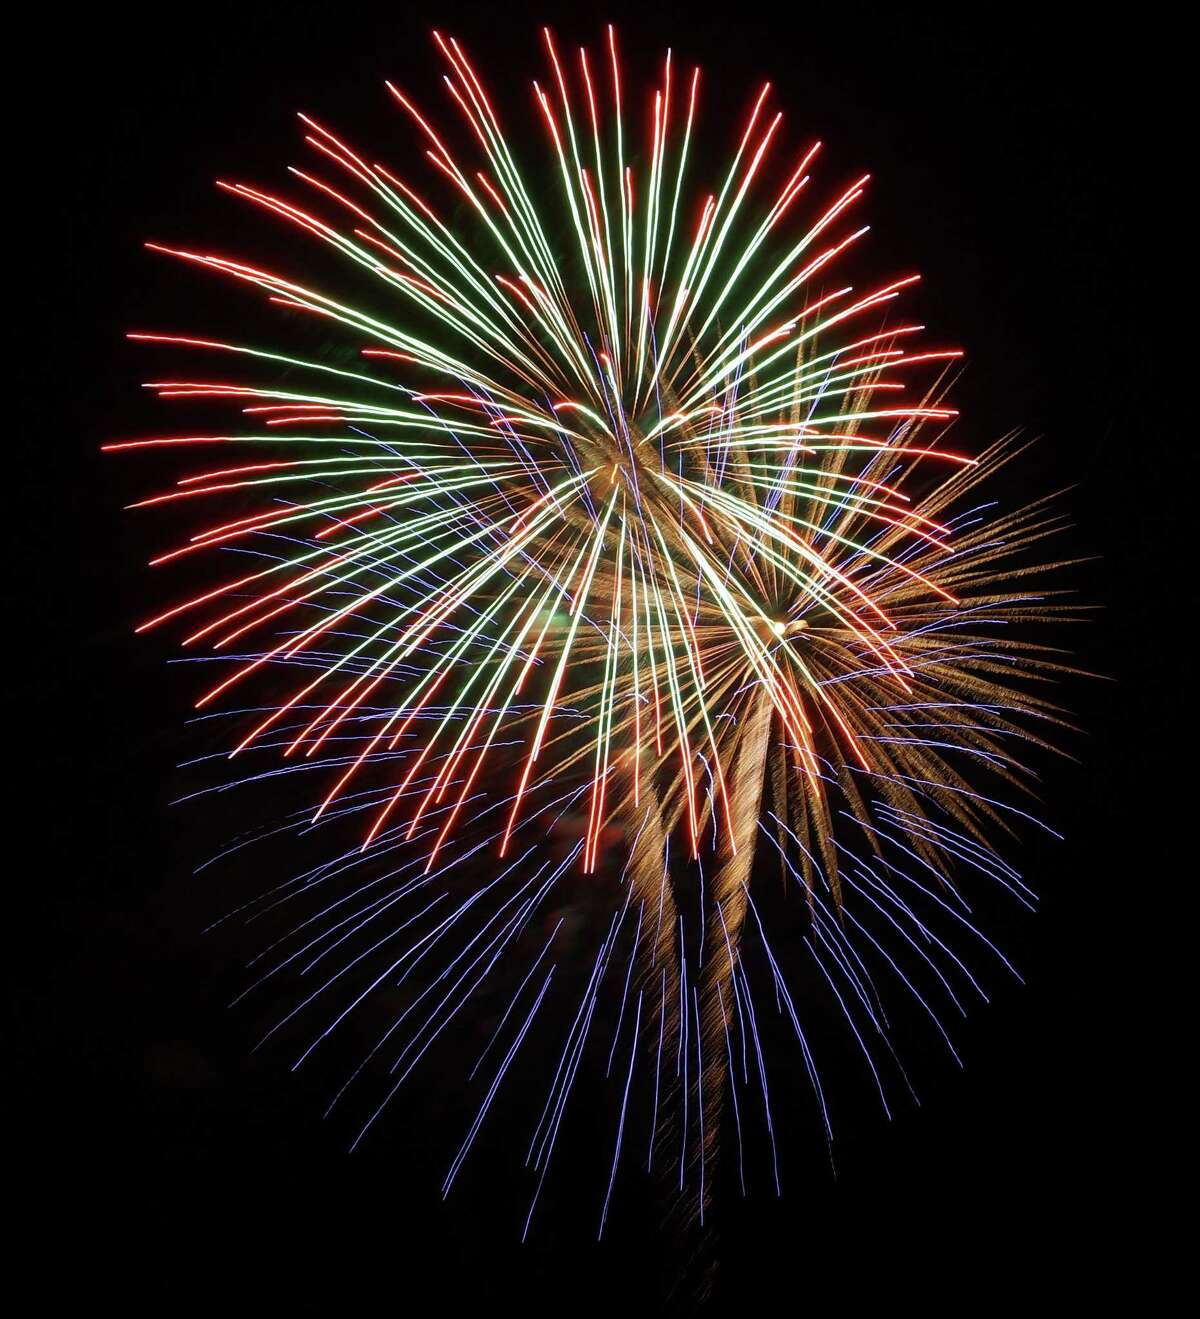 A multi-colored fireworks display explodes over Fairfield's shoreline in a star-spangled salute to the July 4 holiday.